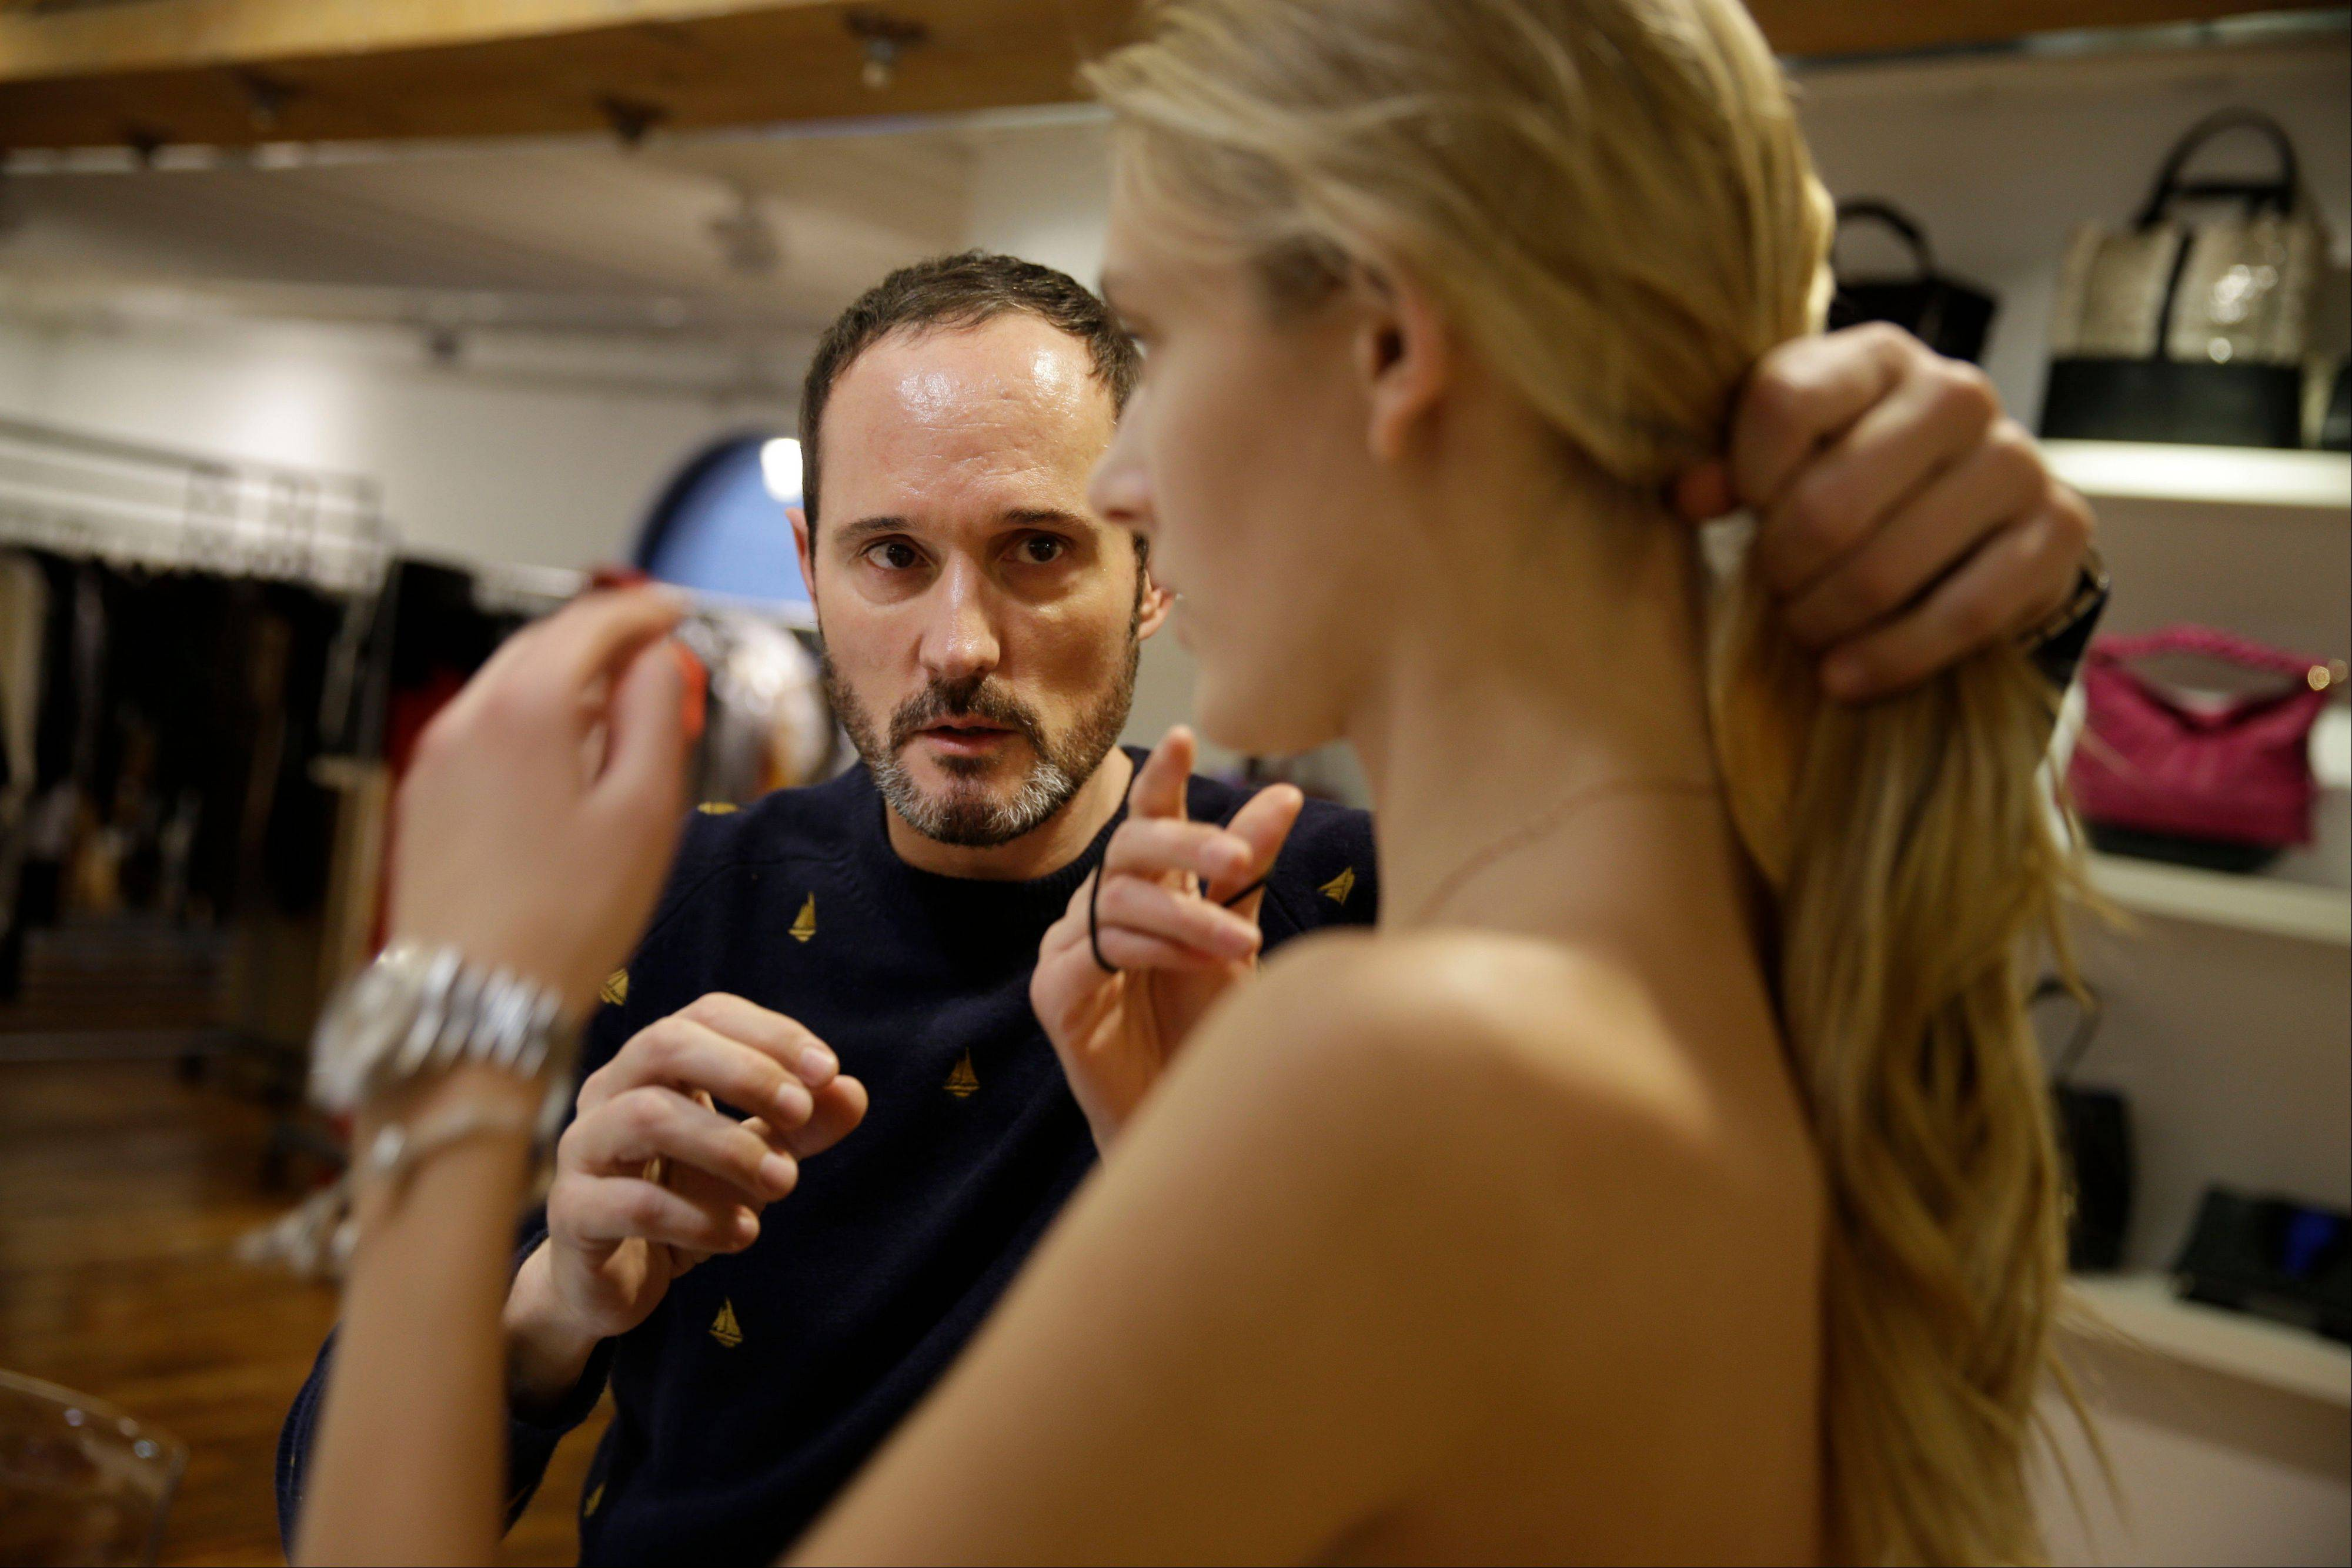 Josep Font, creative director of DelPozo, left, fixes a model's hair during a model casting in New York.